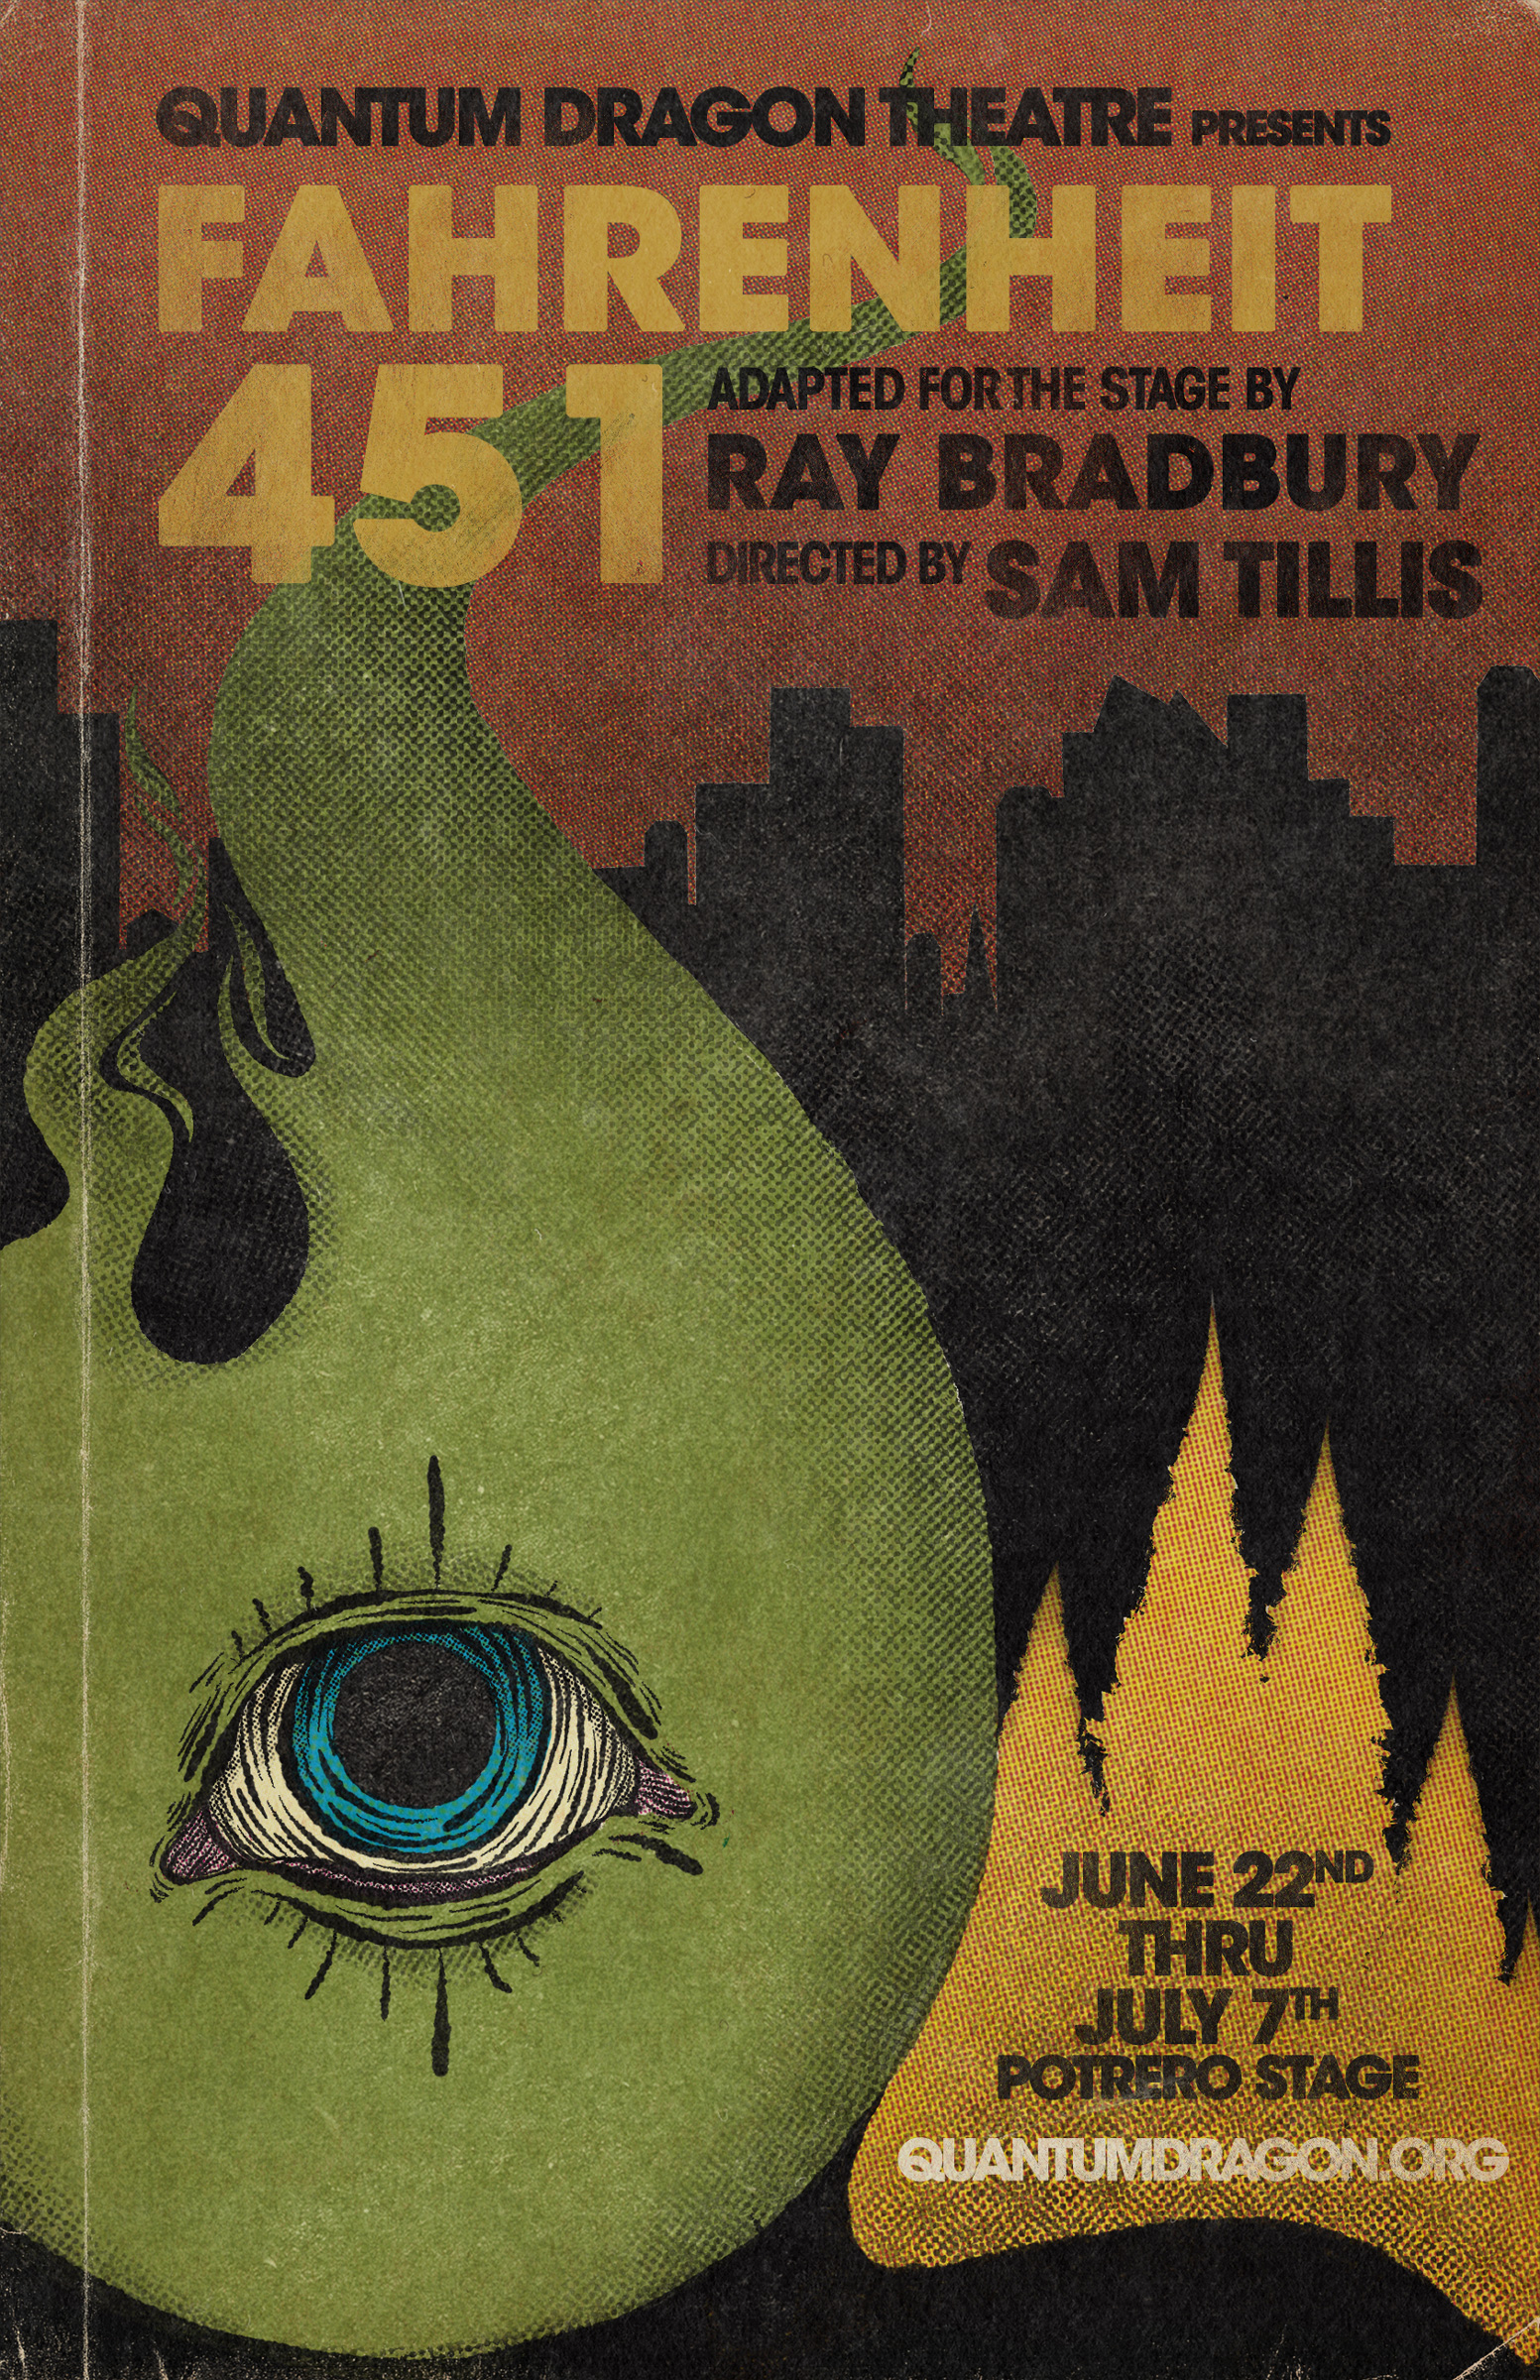 Fahrenheit 451 - By Ray BradburyDirected by Sam TillisJUNE 22nd—JULY 7th, 2019Potrero Stage1695 18th St, San Francisco110 min, including one intermissionClick here for content notice